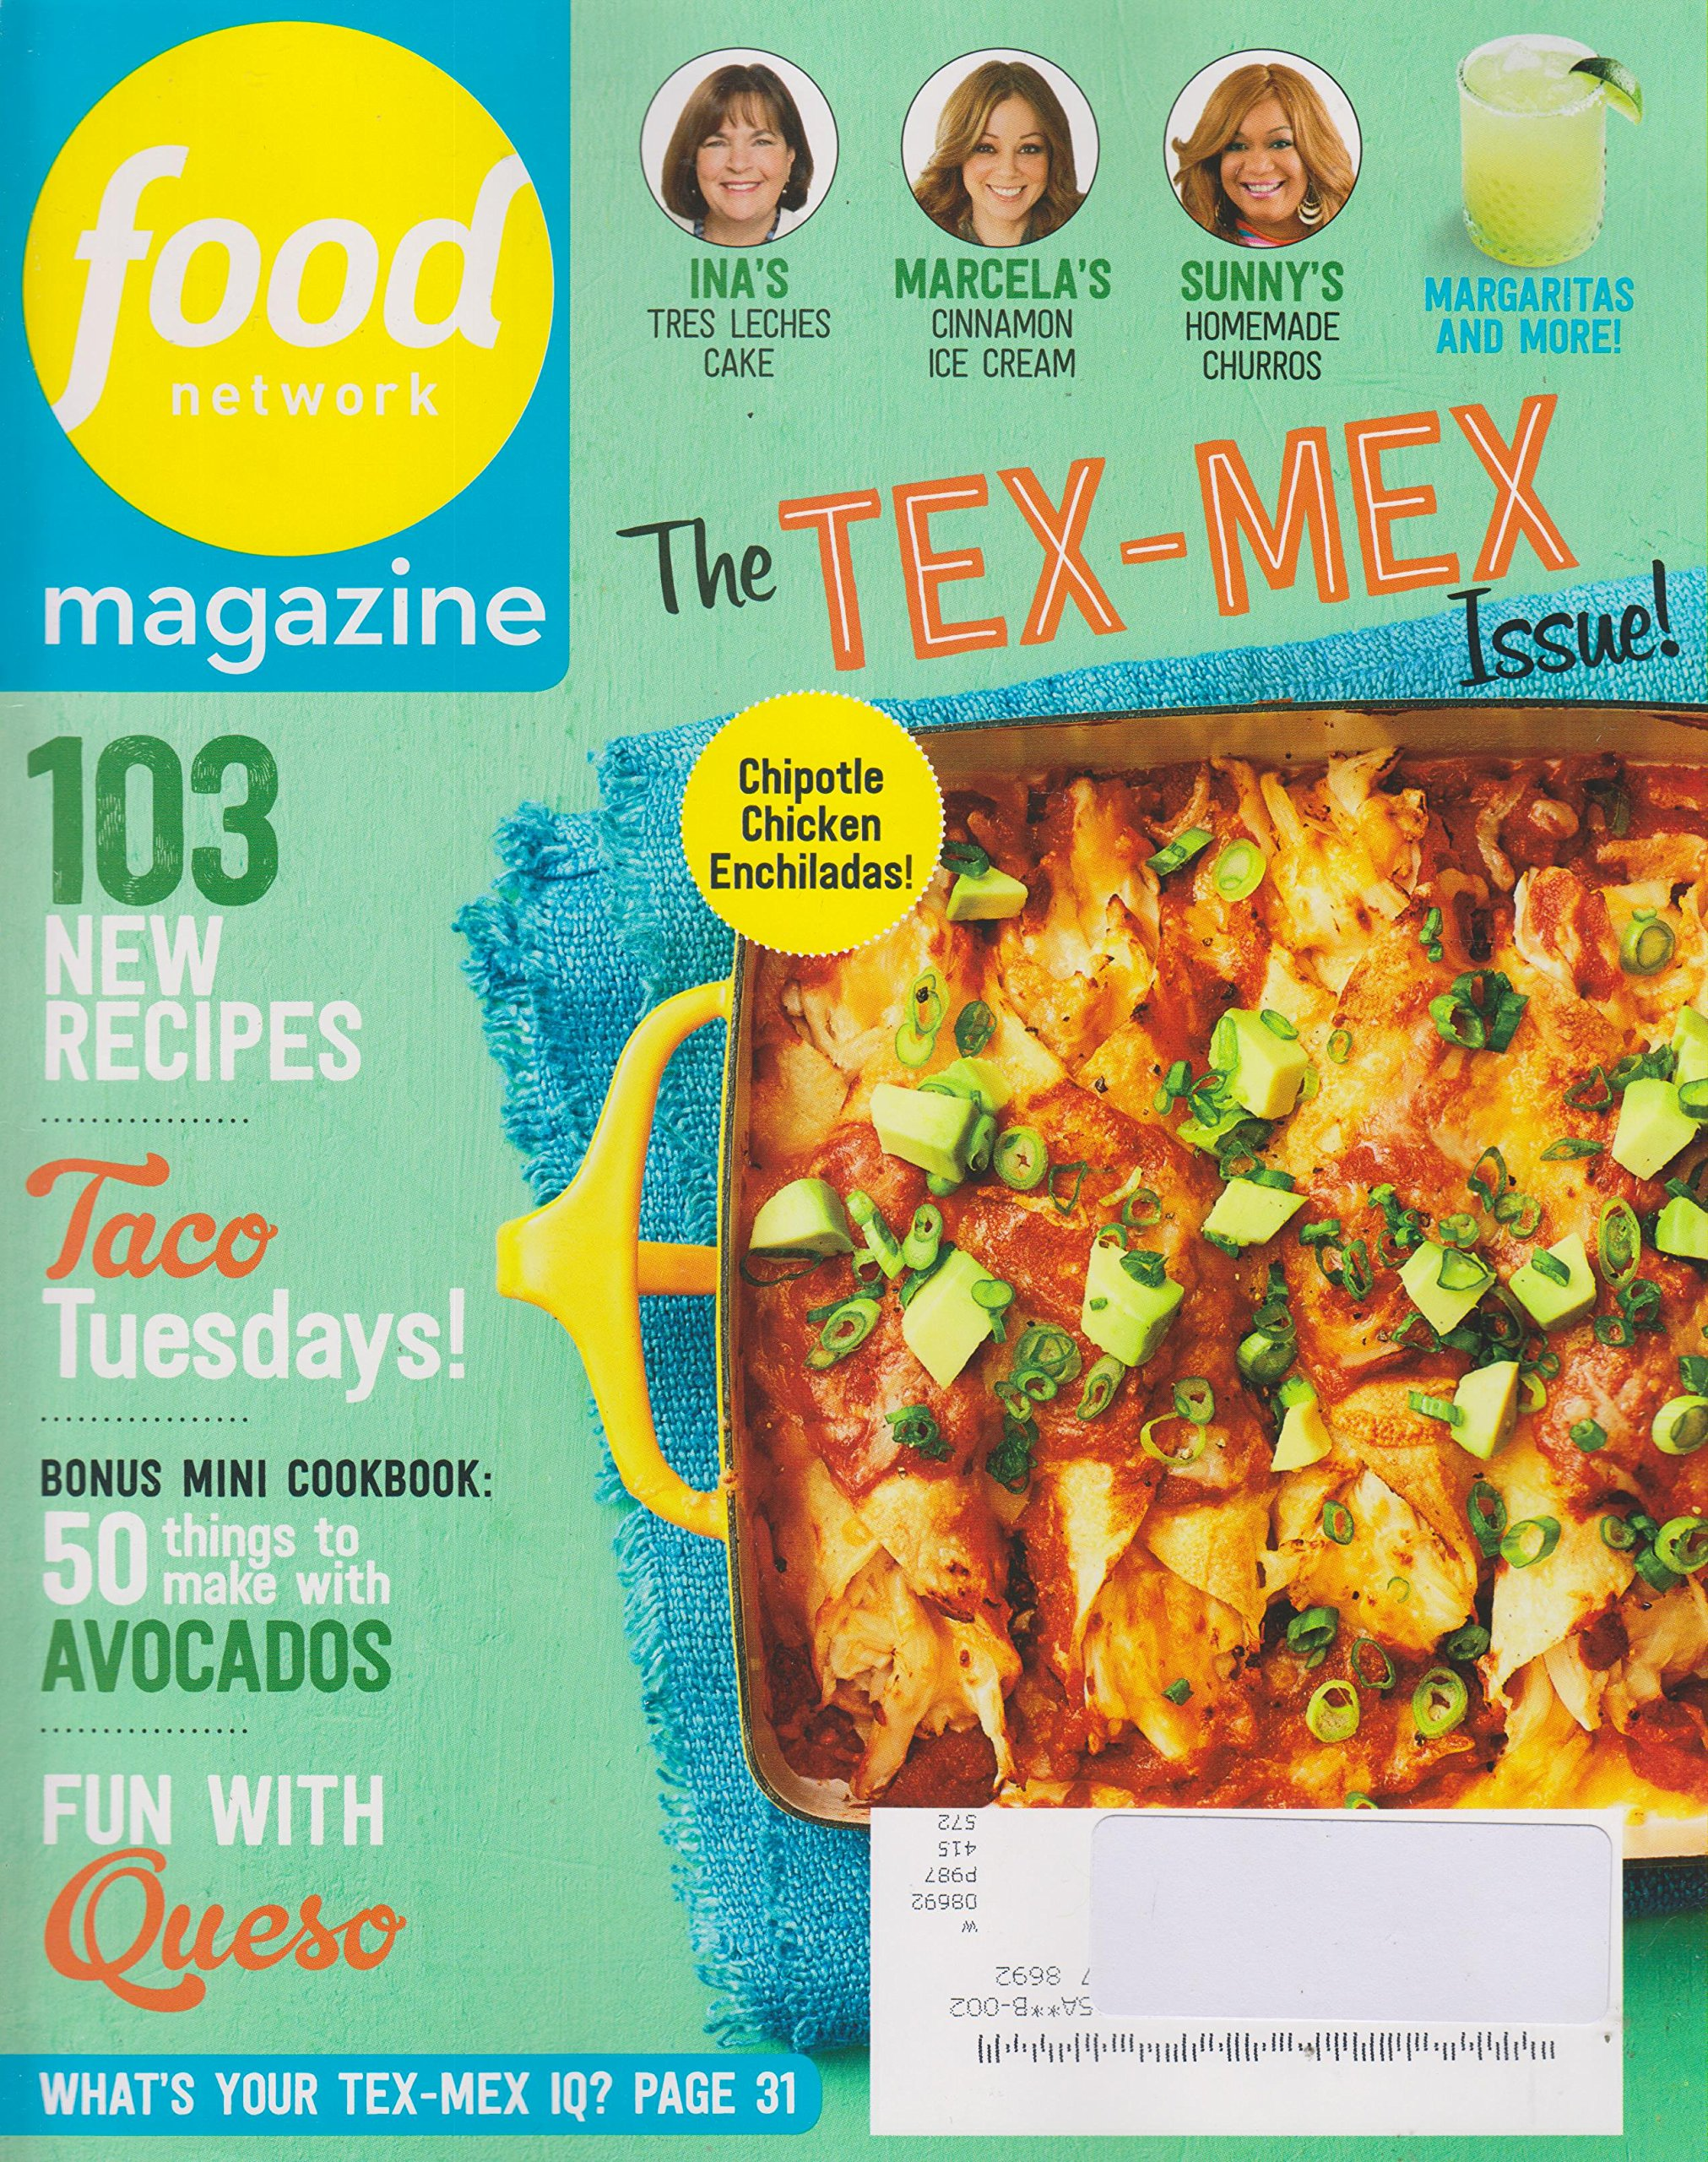 Food network may 2017 the tex mex issue 103 new recipes various food network may 2017 the tex mex issue 103 new recipes various amazon books forumfinder Choice Image